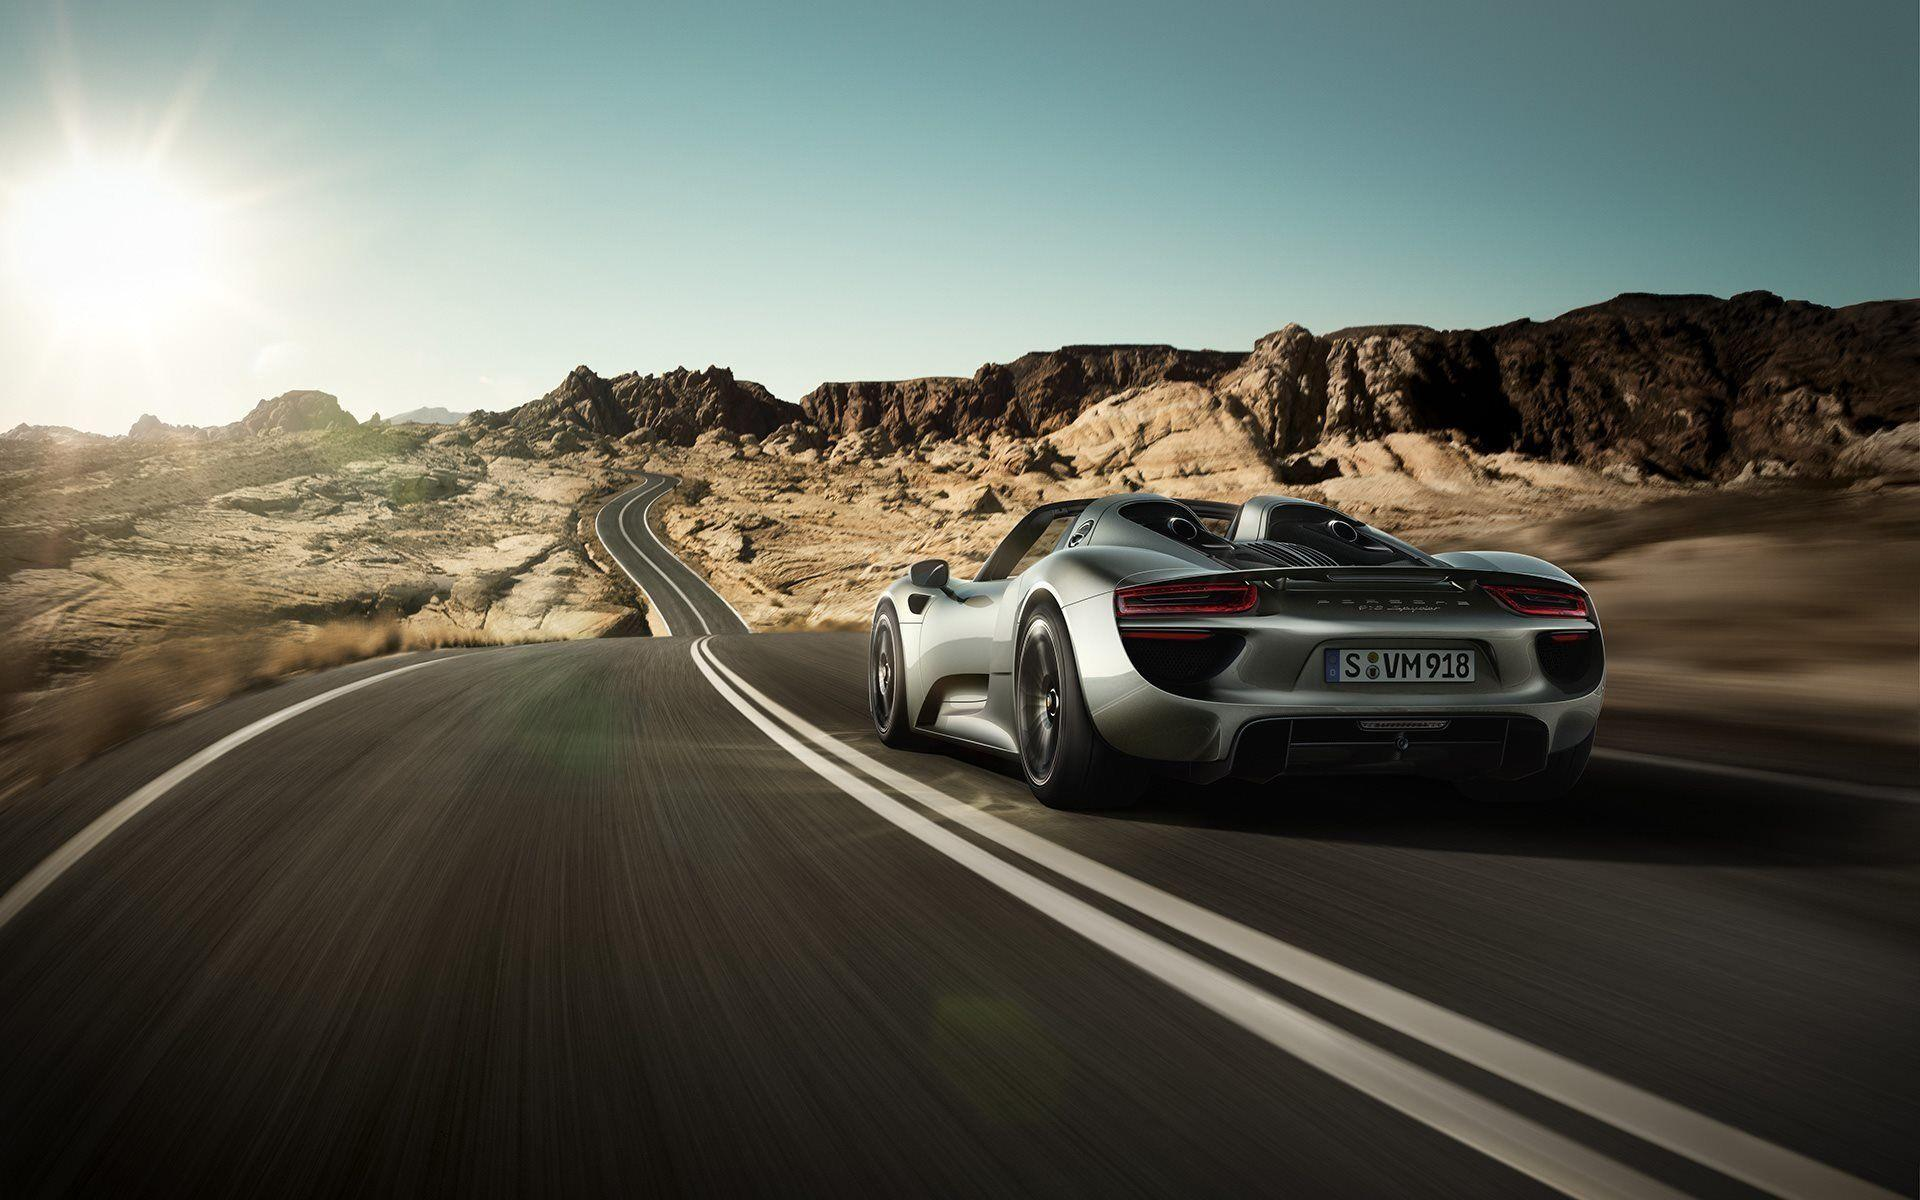 Porsche 918 Spyder Wallpapers Wallpaper Cave